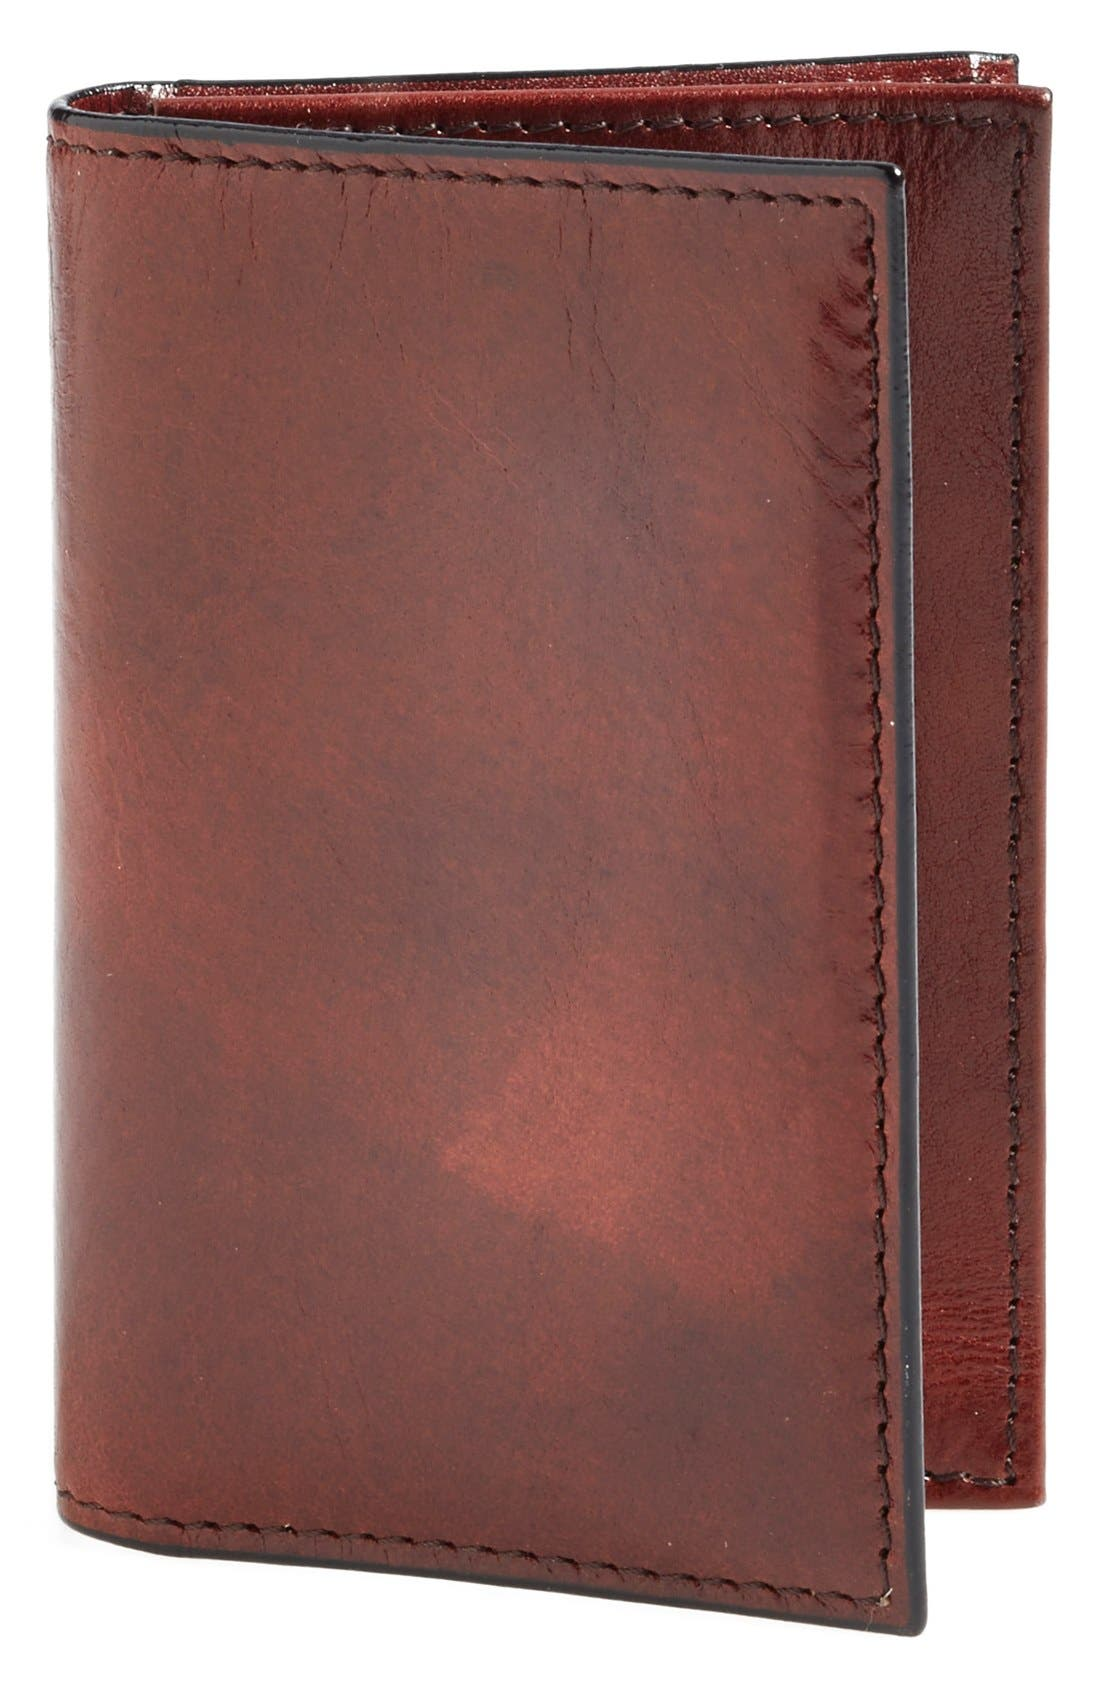 'Old Leather' Gusset Wallet,                             Main thumbnail 1, color,                             Dark Brown